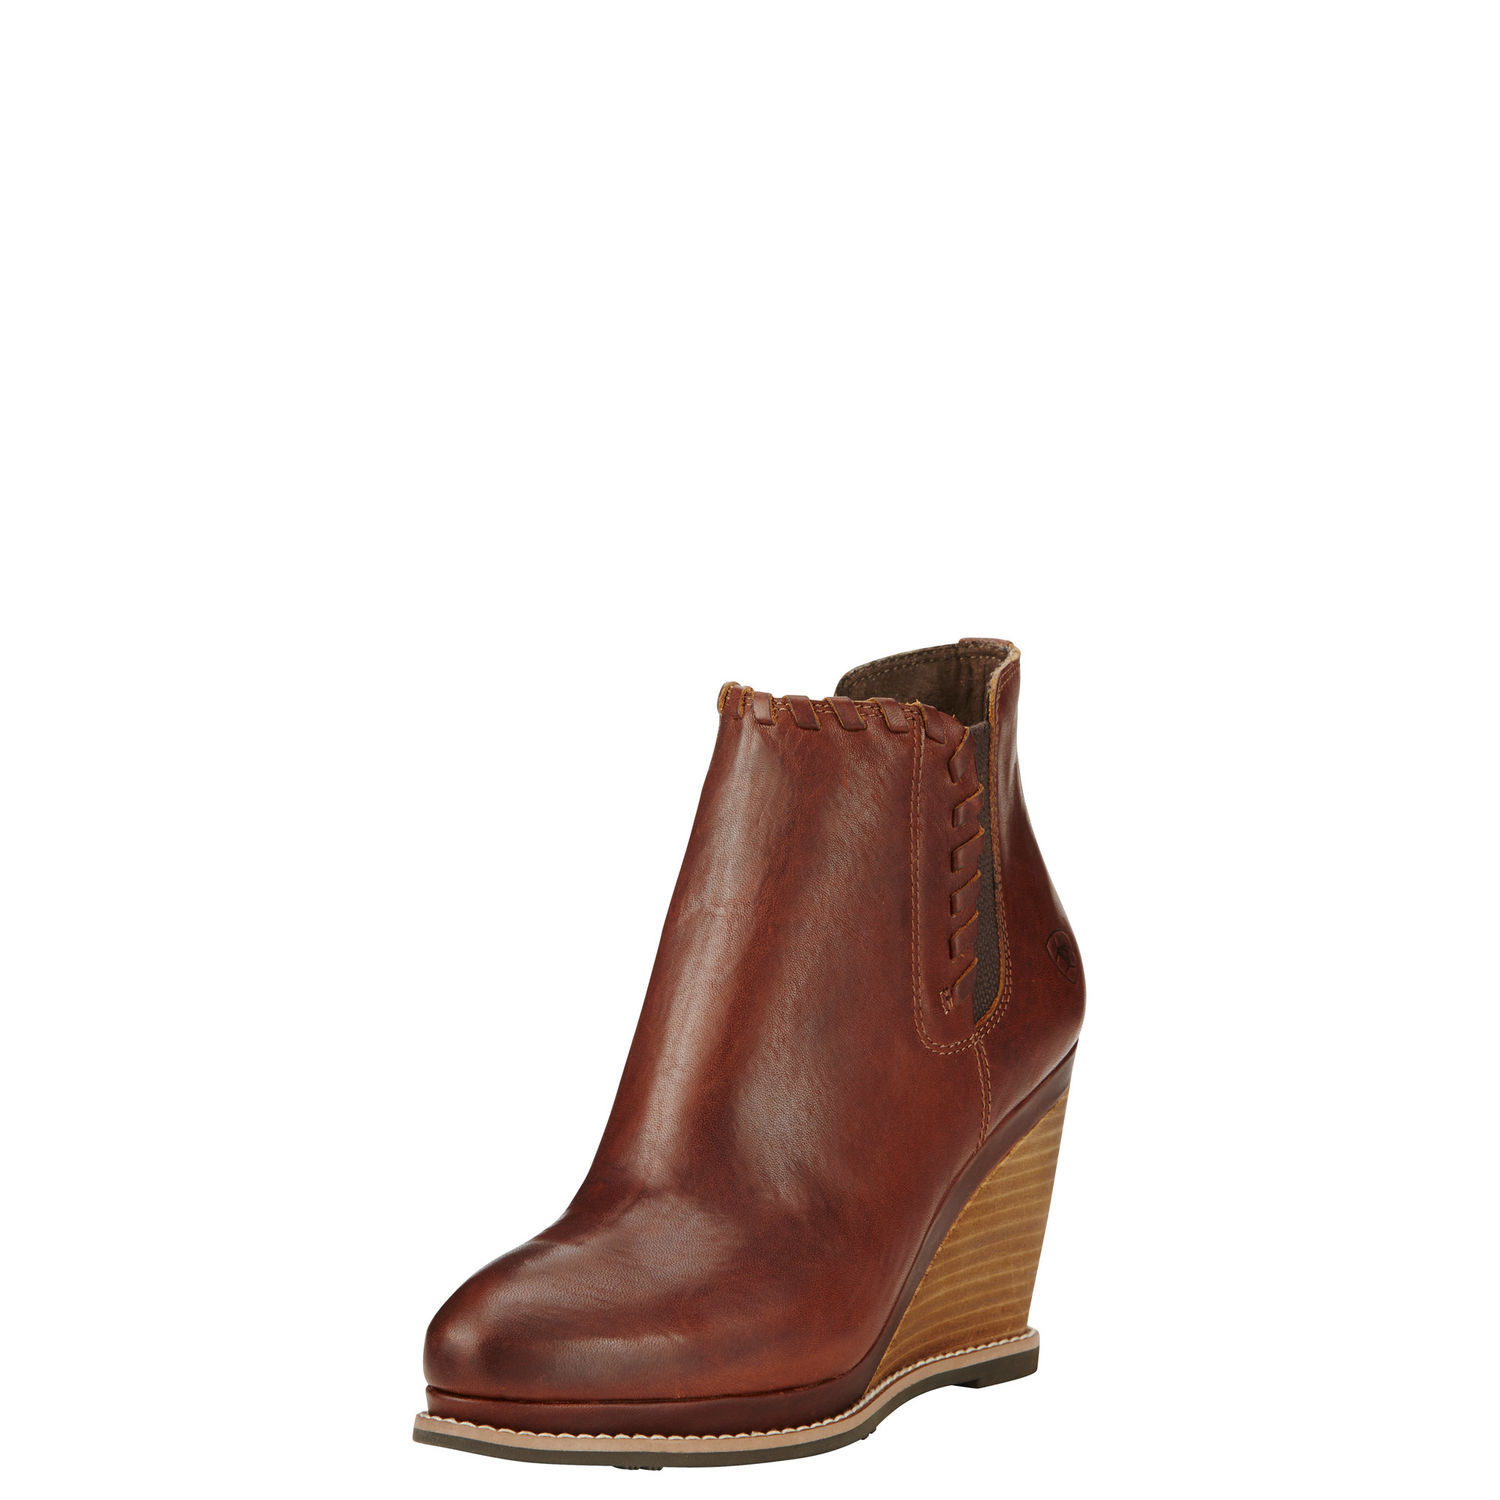 Ariat Belle Women Round Toe Leather Brown Ankle Boot by Ariat